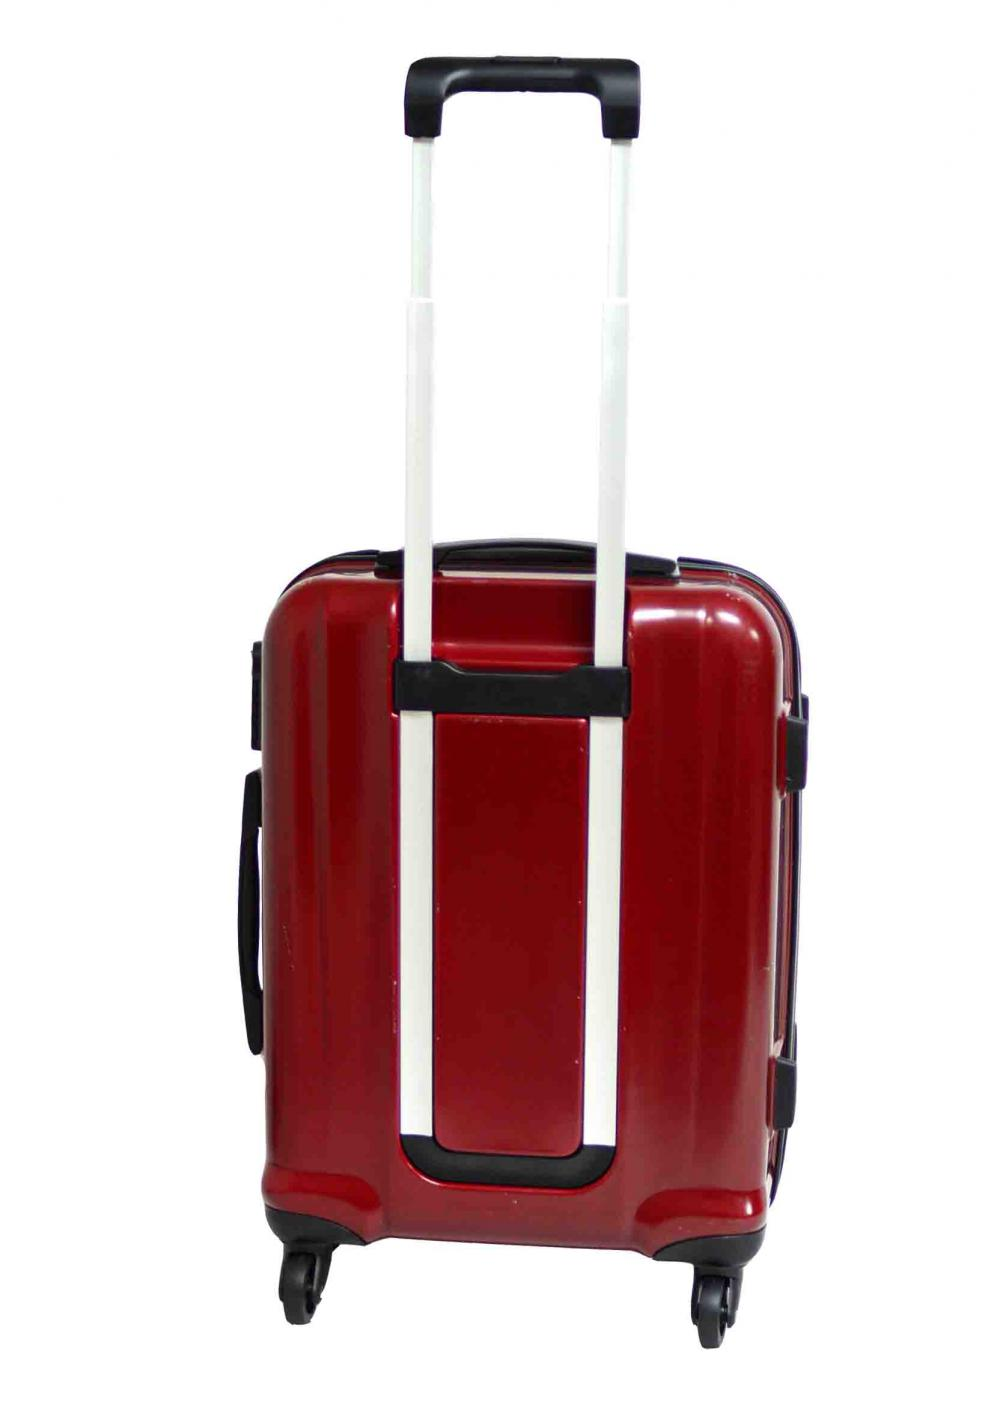 ABS&PC Material Luggage Case